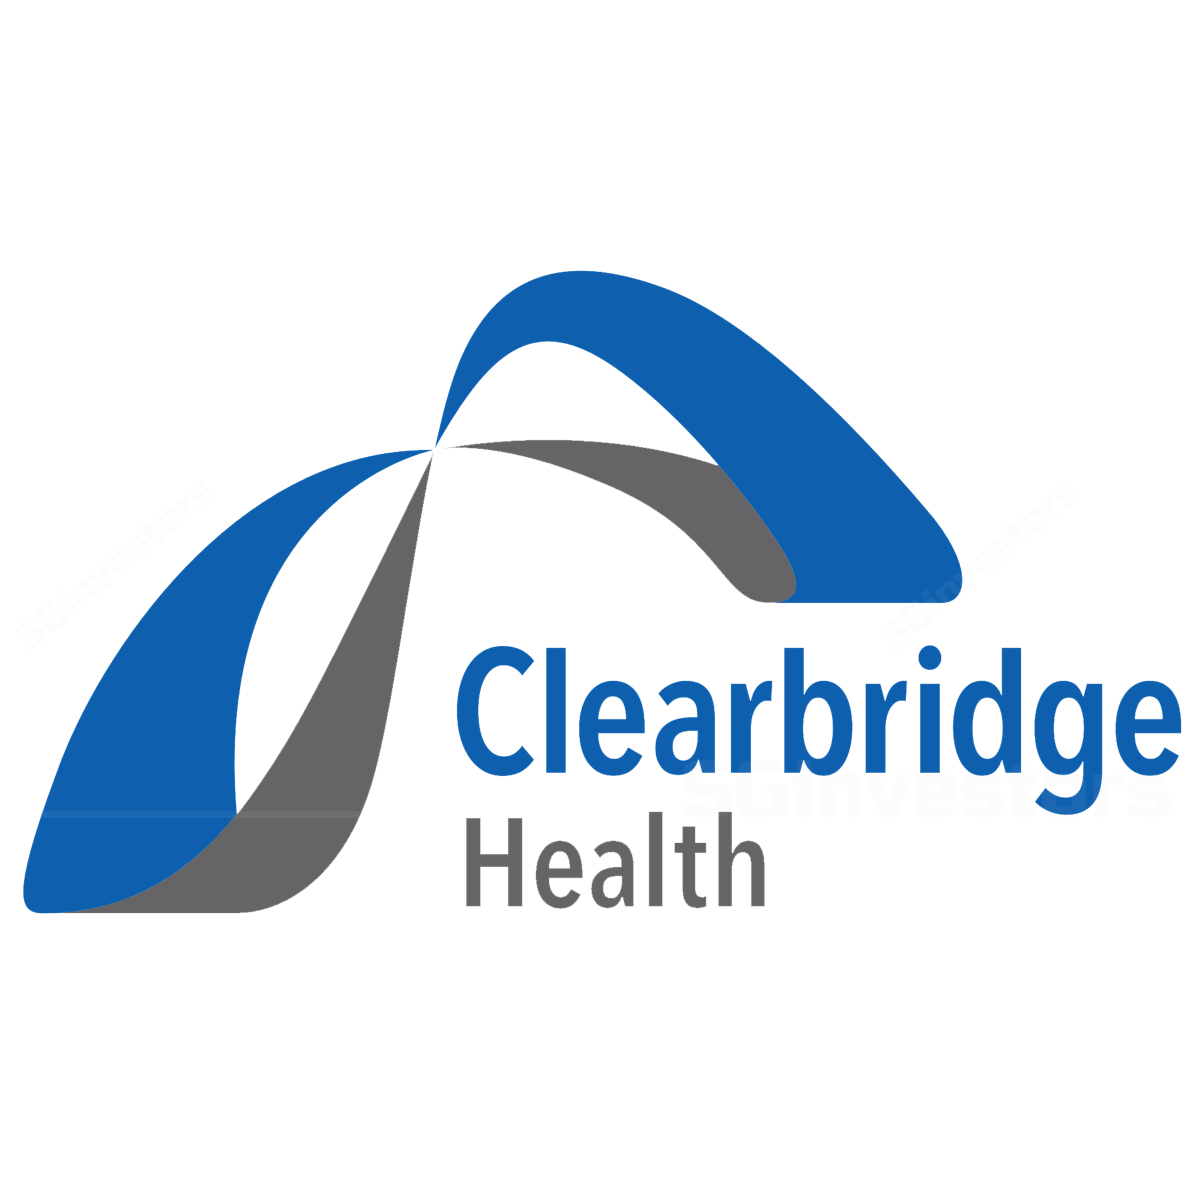 Clearbridge Health Ltd - Rolling up profits centres in